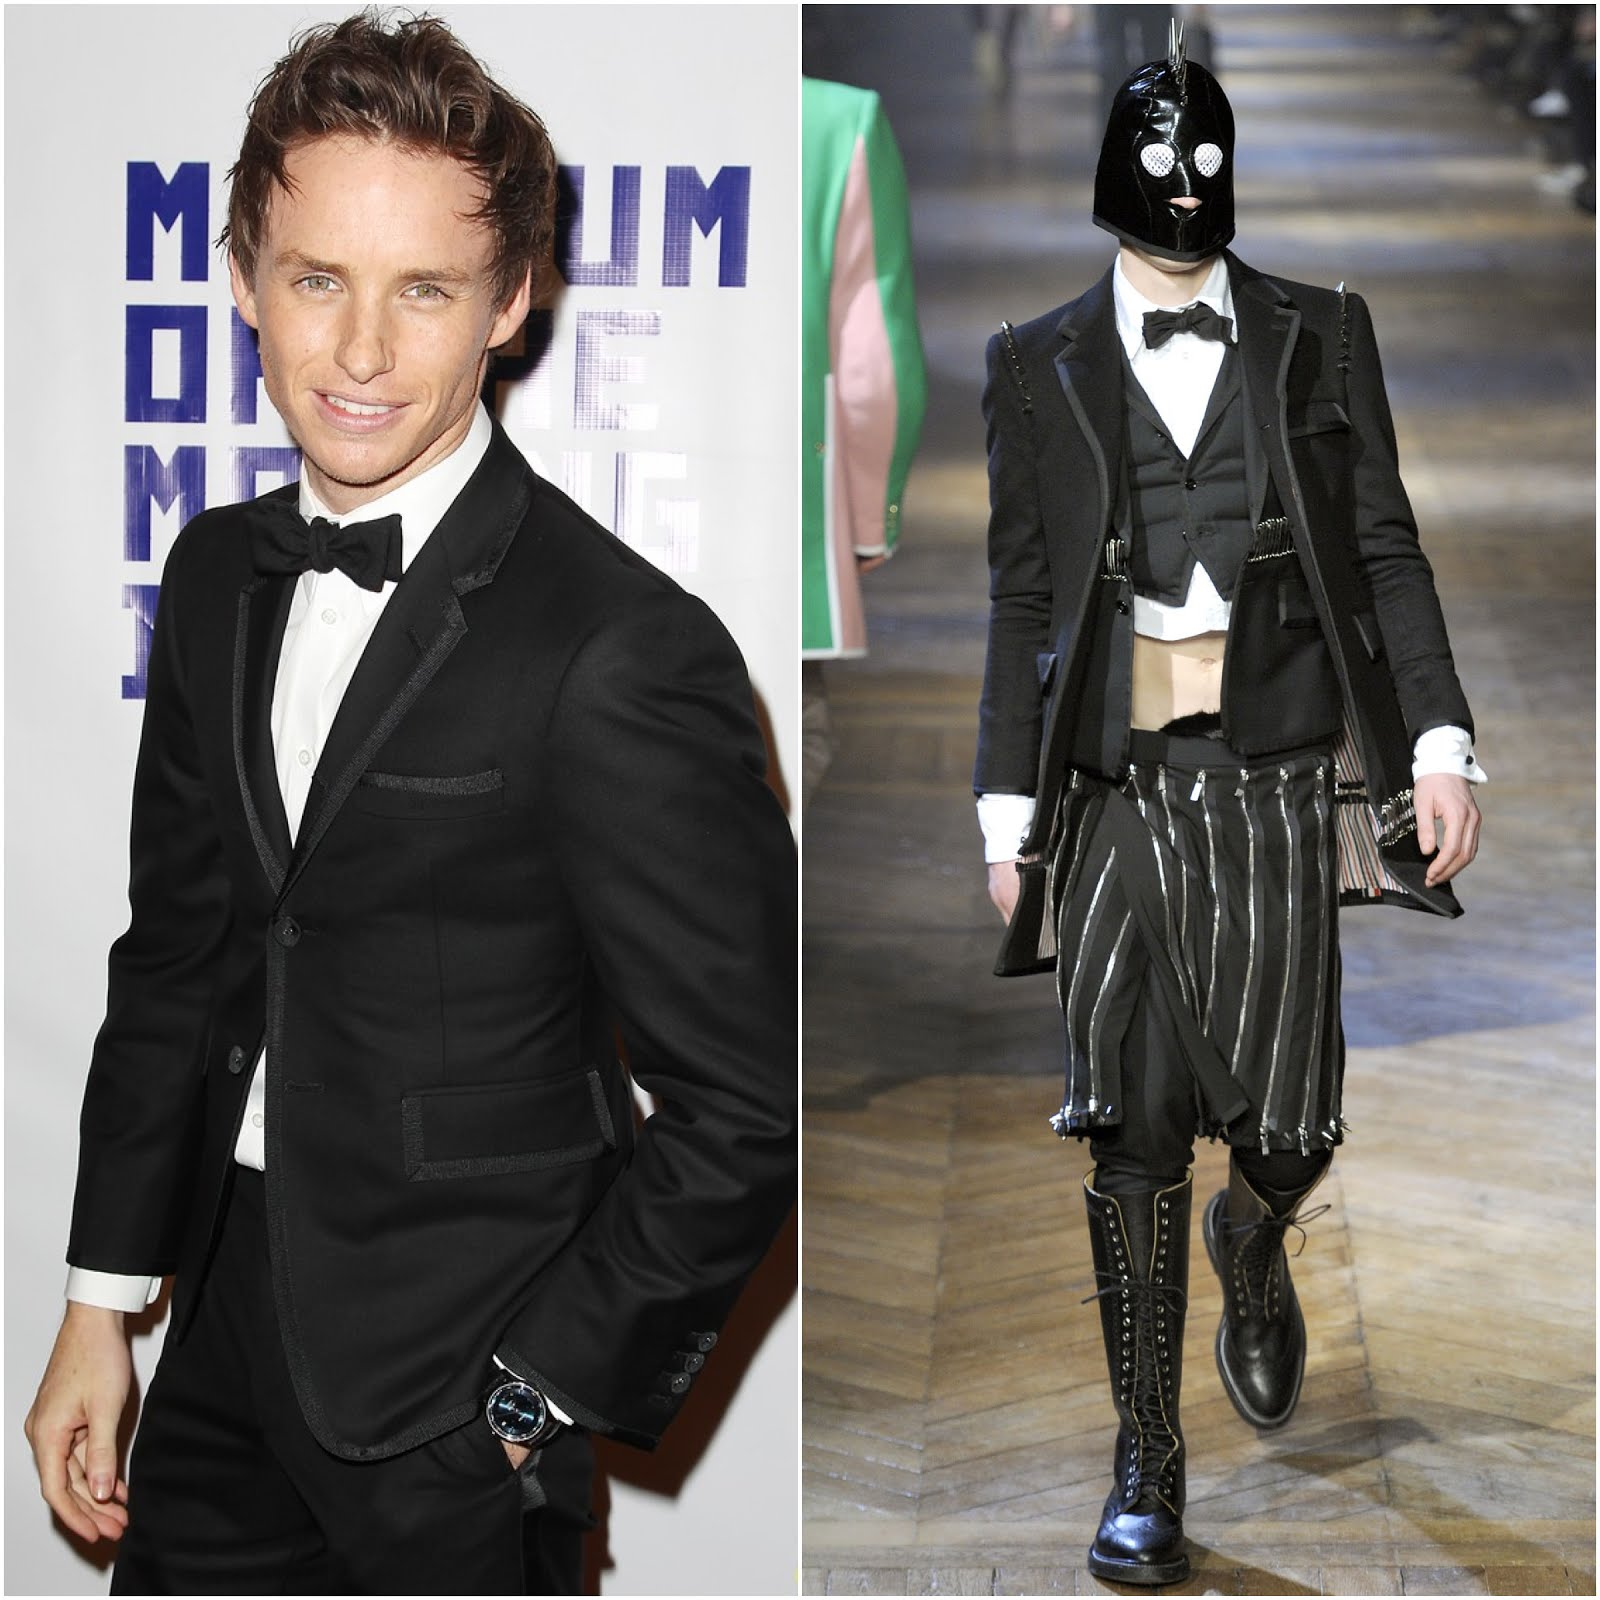 00O00 London Menswear Blog Eddie Redmayne in Thom Browne -  Museum of Moving Images salute to Hugh Jackman